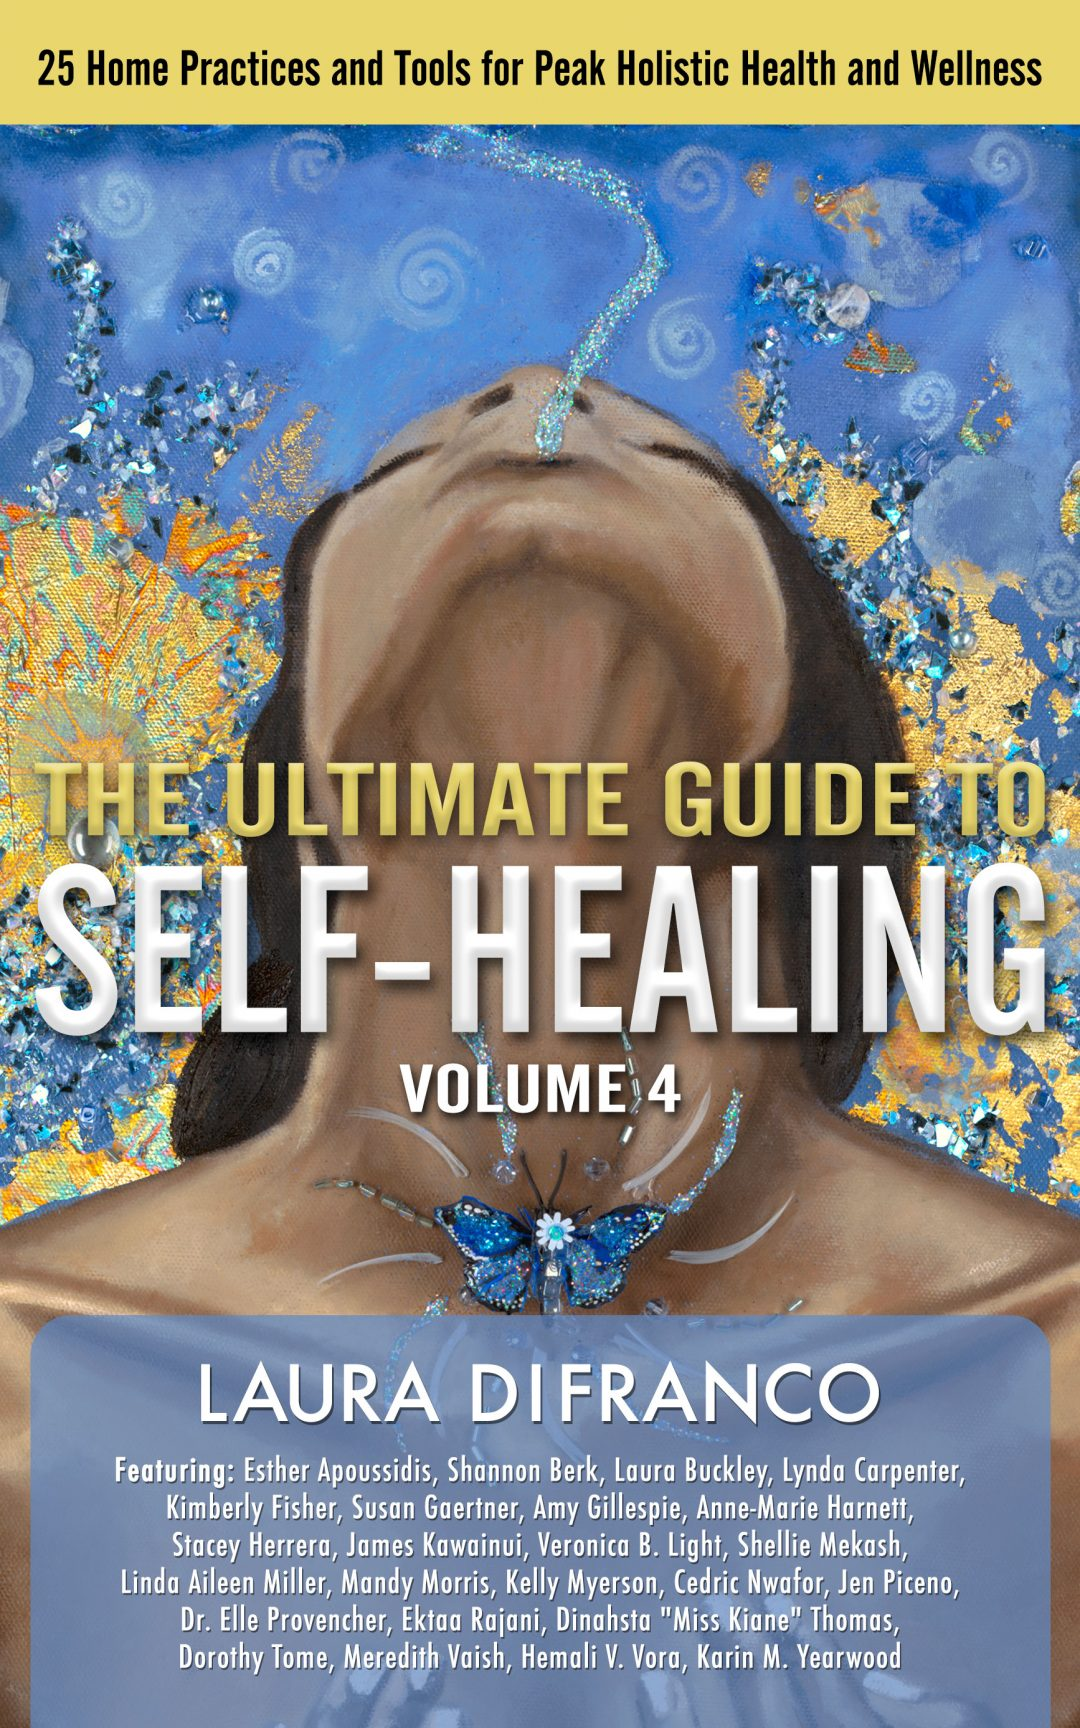 The Ultimate Guide to Self-Healing Volume 4